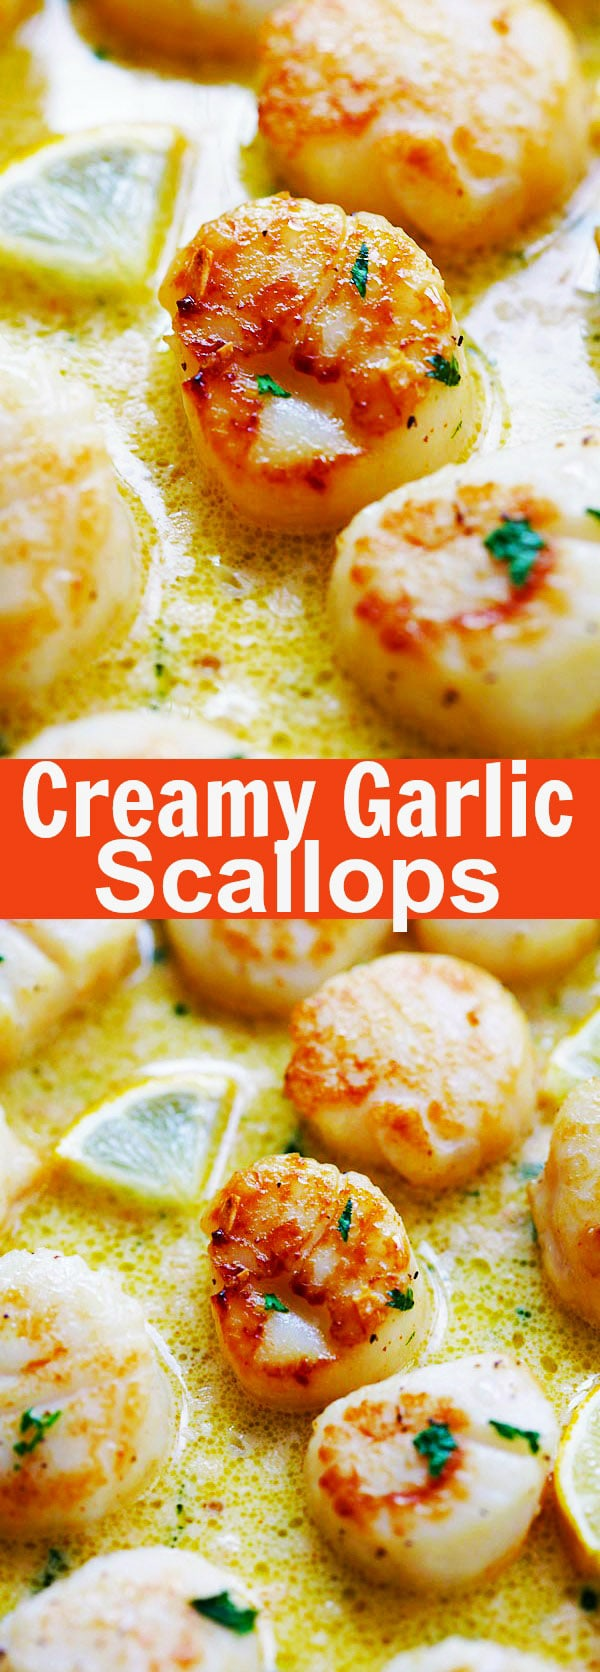 Creamy Garlic Scallops - easiest, creamiest and best scallop recipe ever. Takes only 15 mins, better than restaurants and much cheaper | rasamalaysia.com